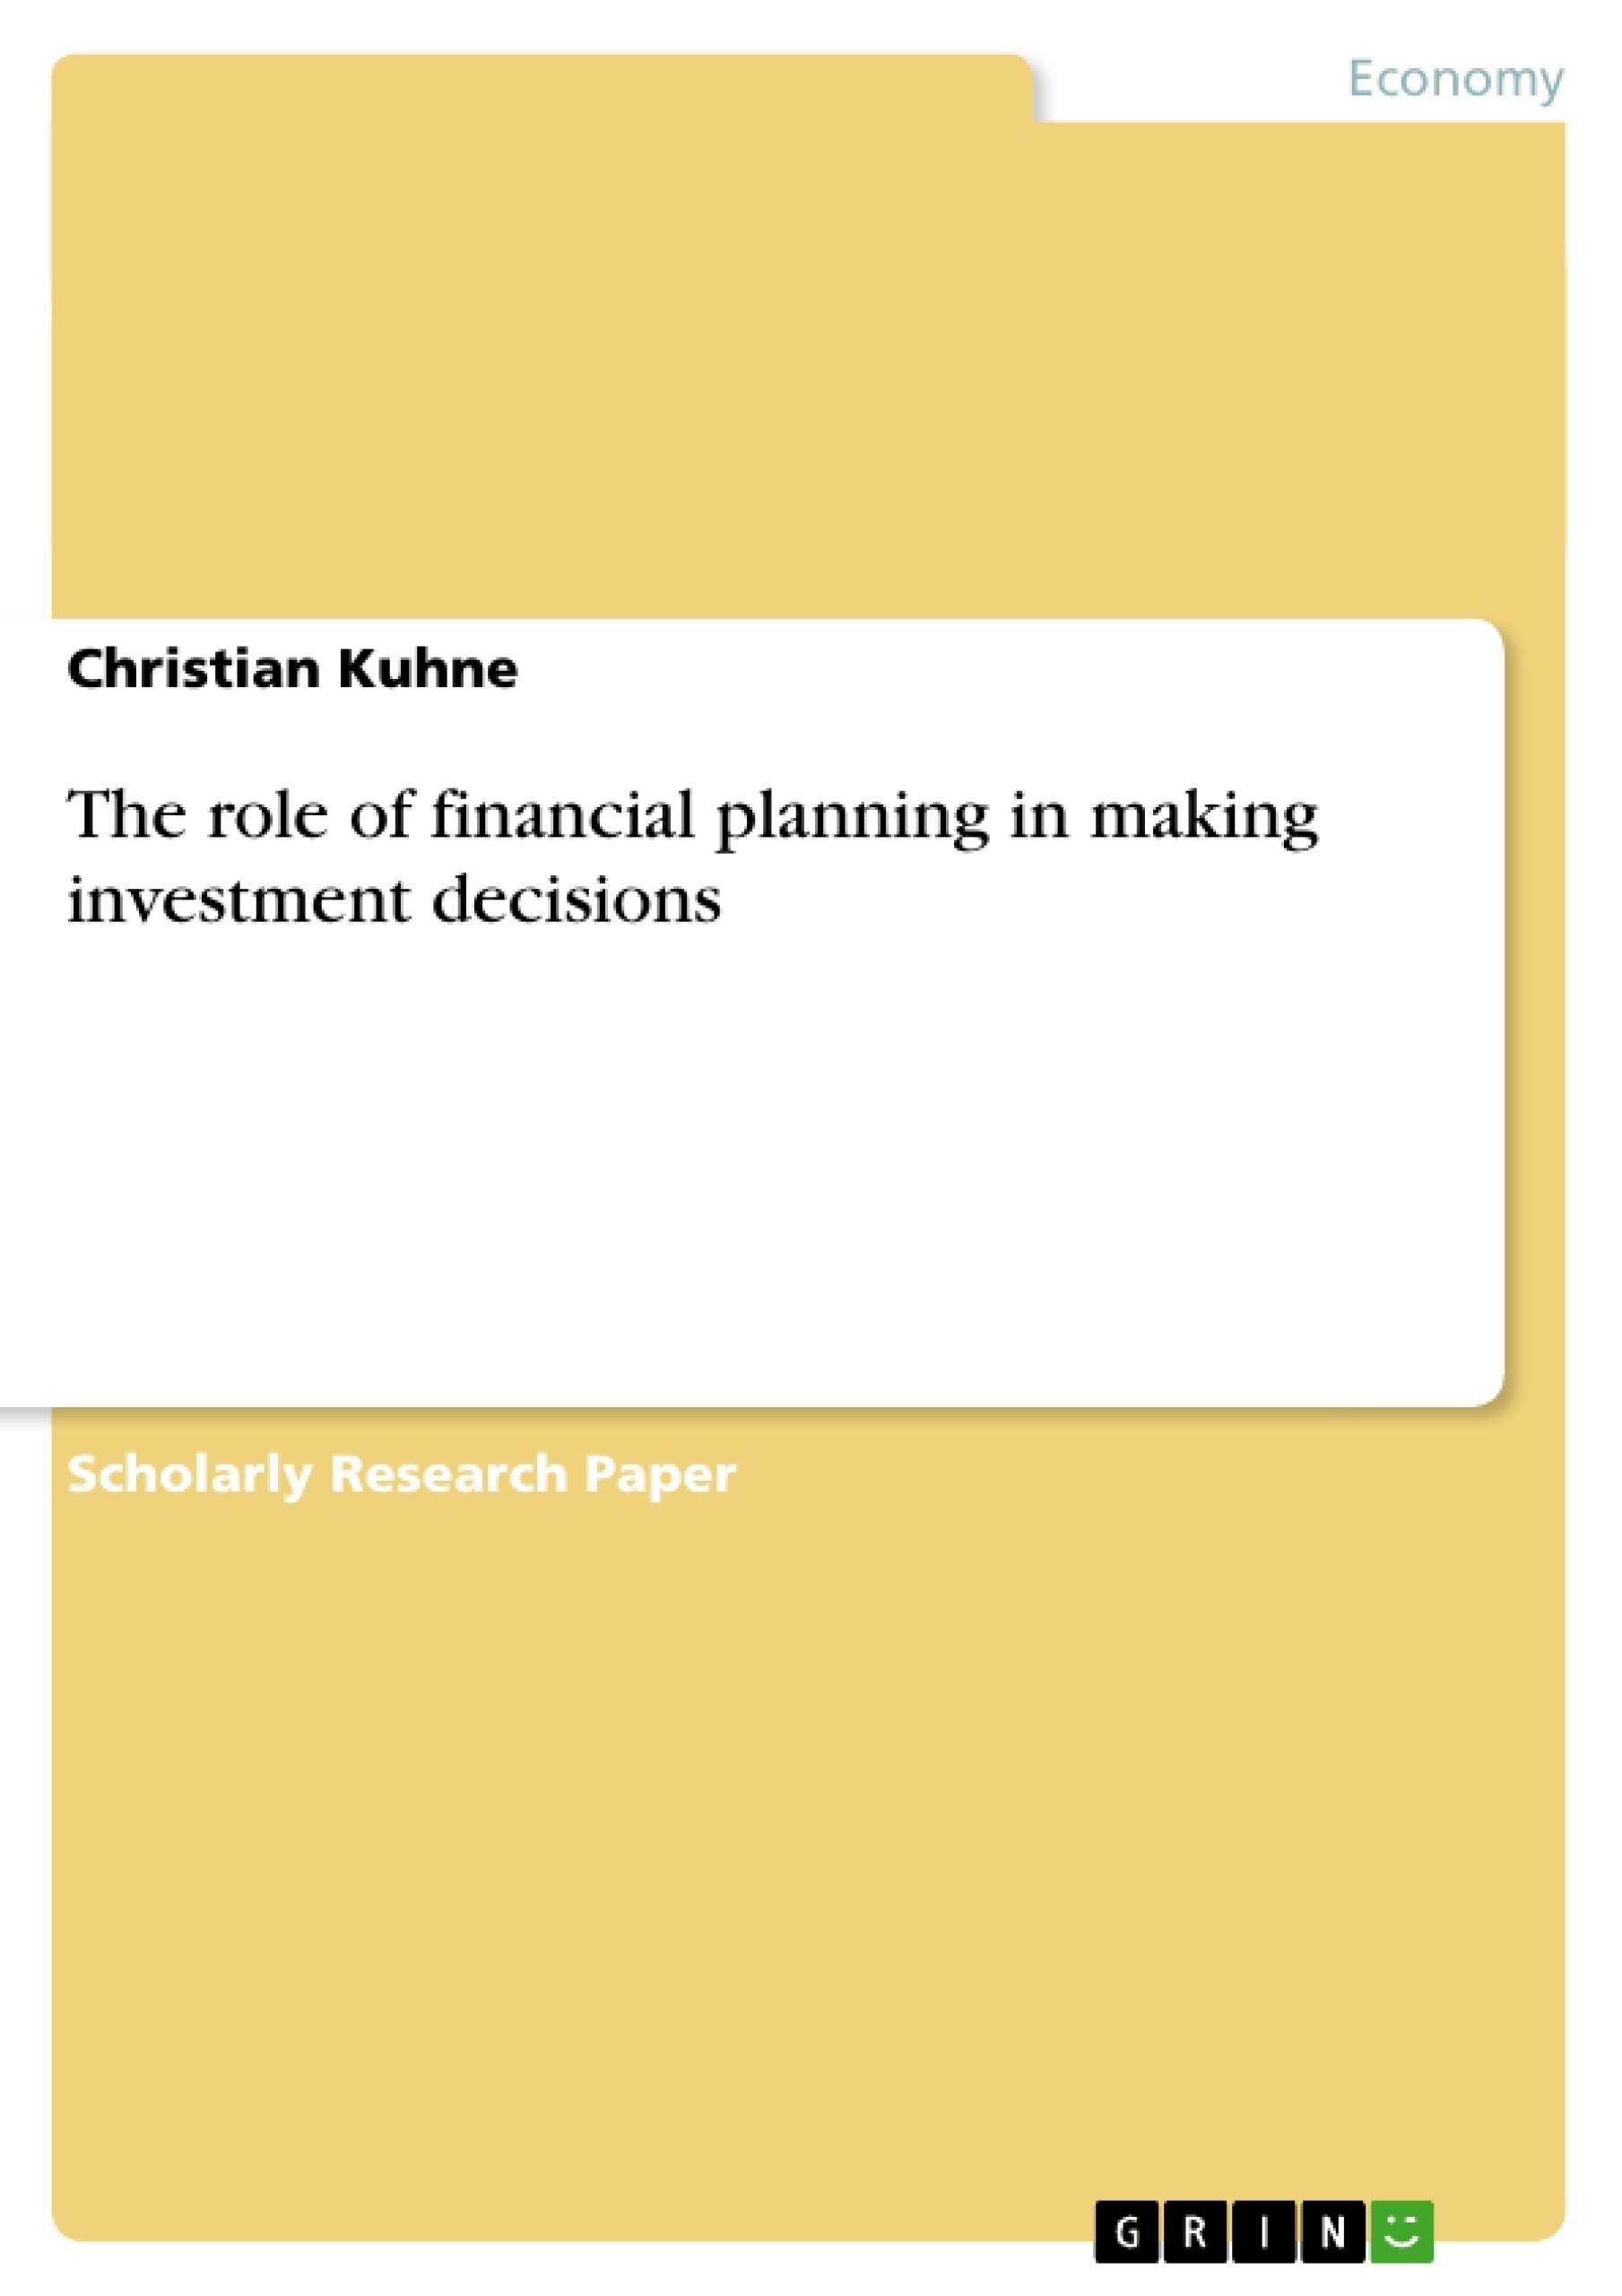 Essay on investment decisions